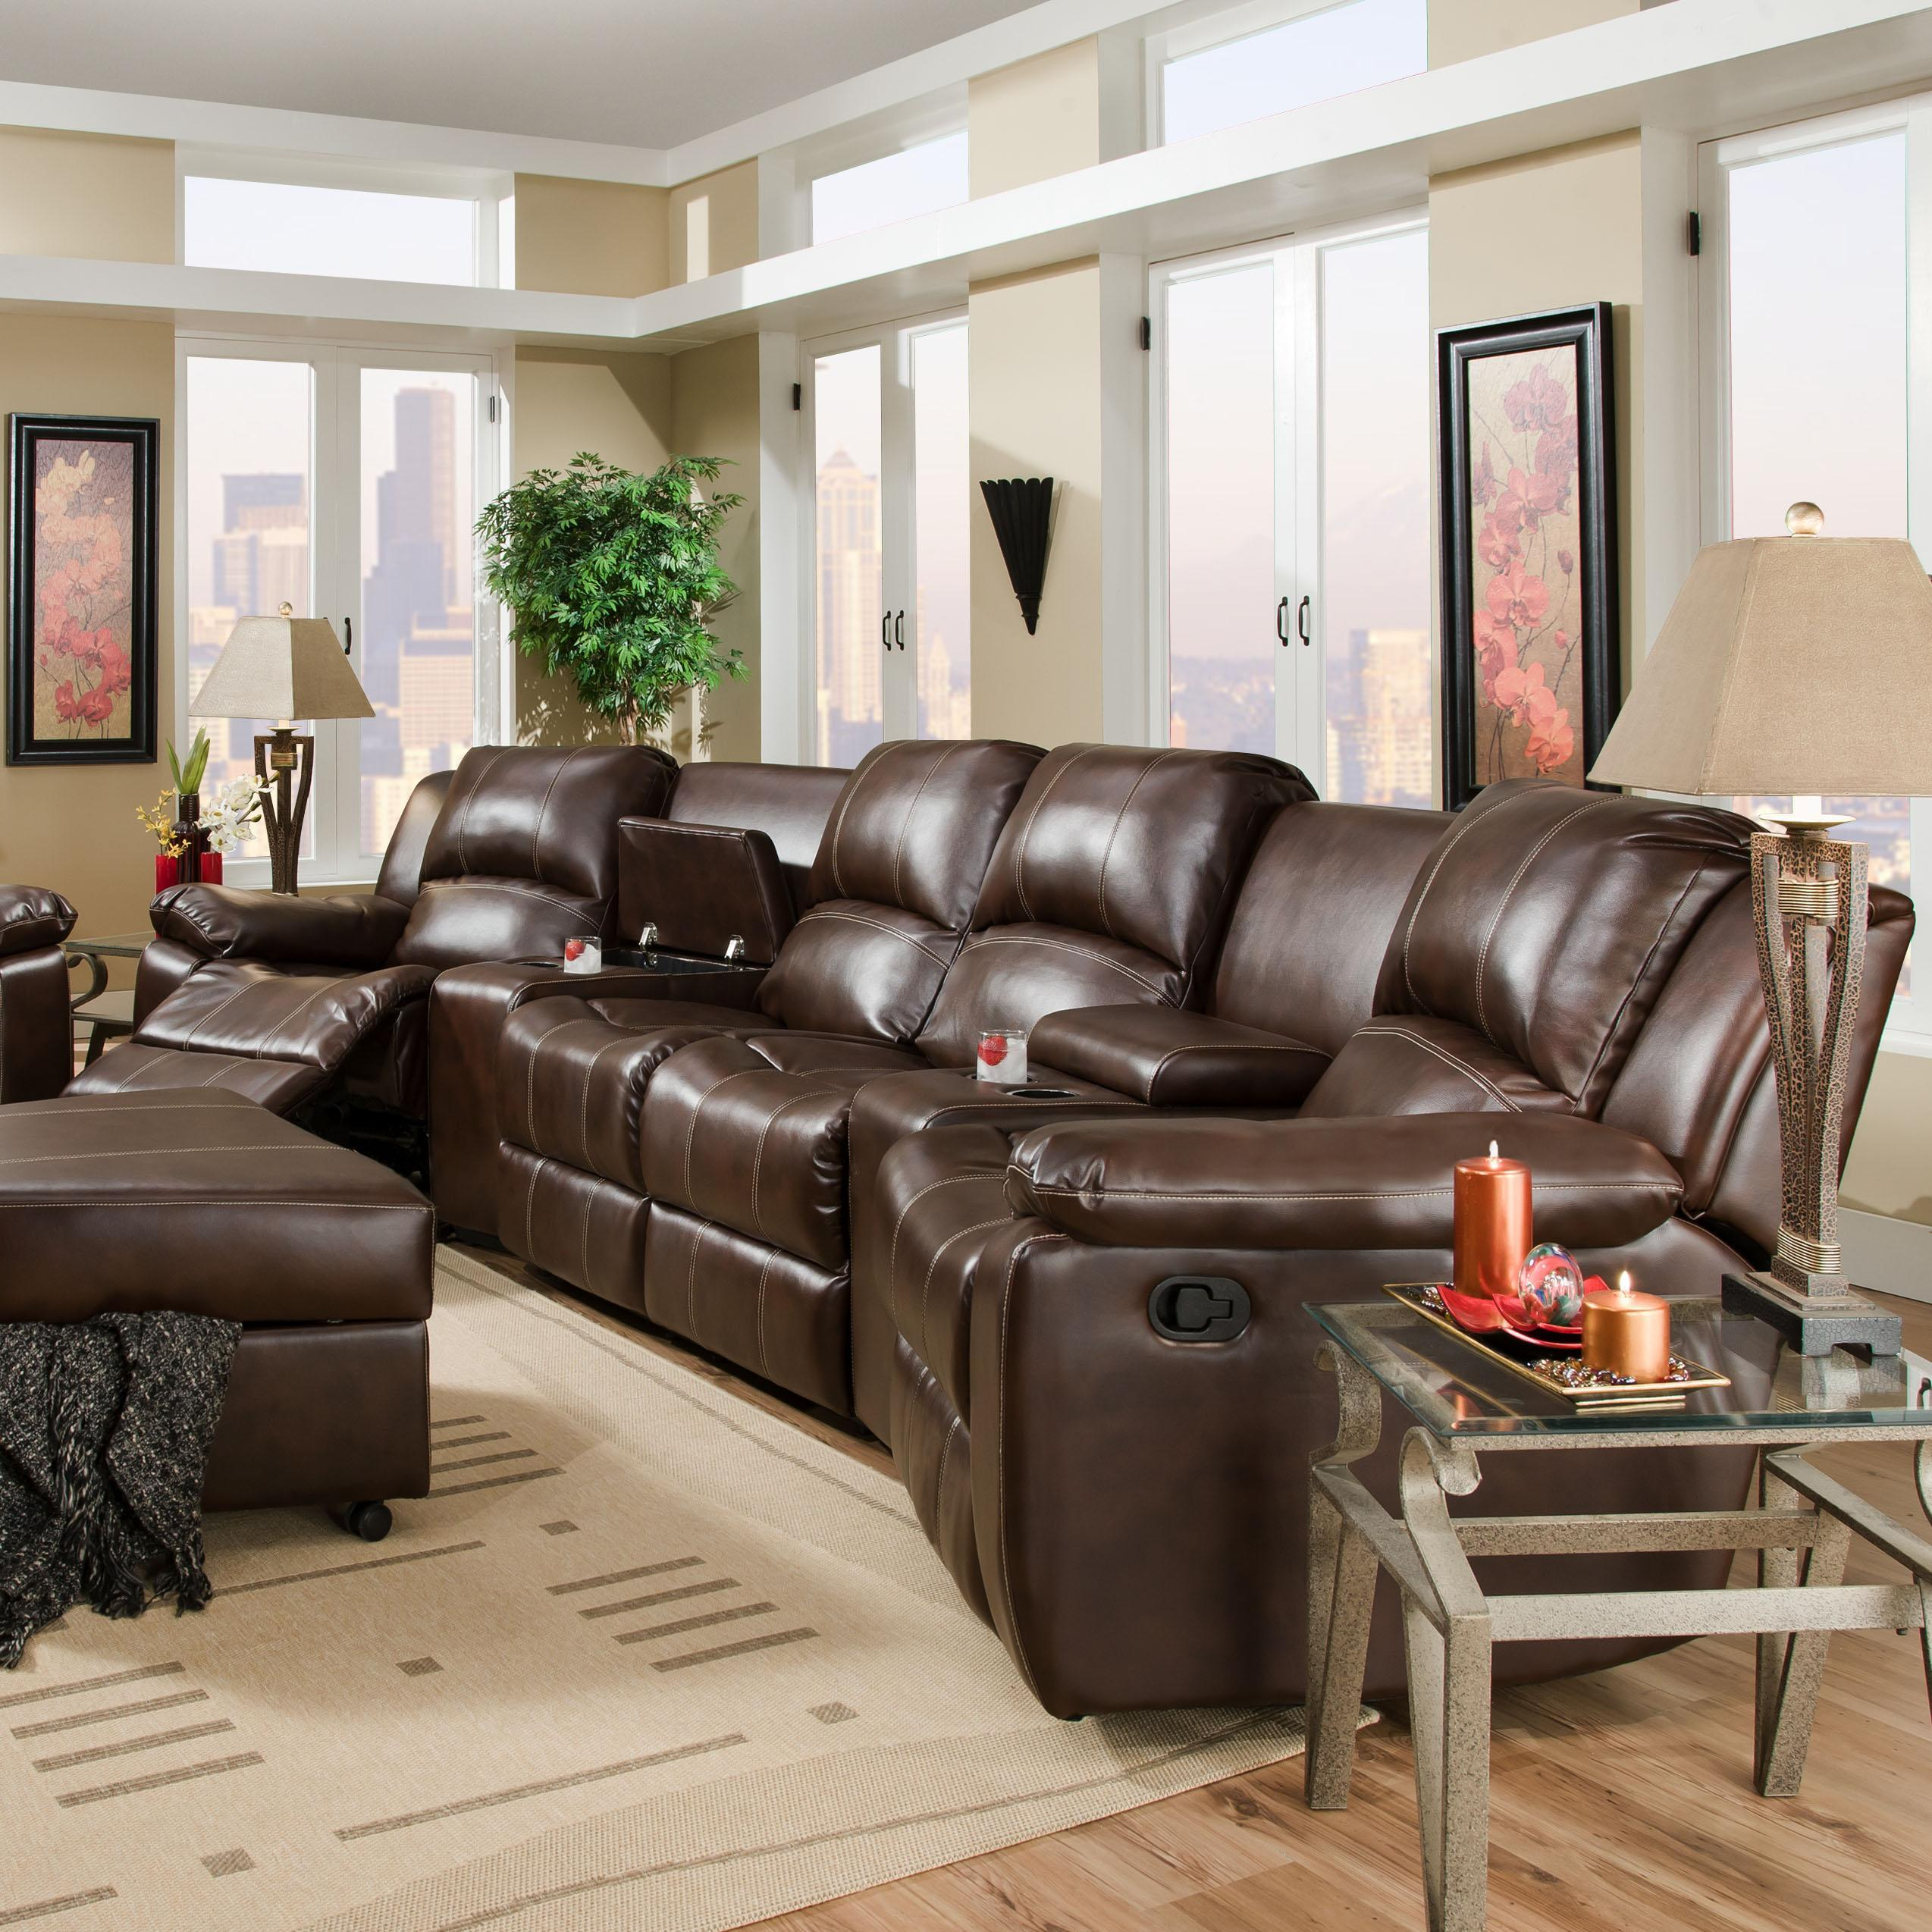 brady reclining theater seating with center loveseat belfort furniture reclining sectional sofas. Black Bedroom Furniture Sets. Home Design Ideas